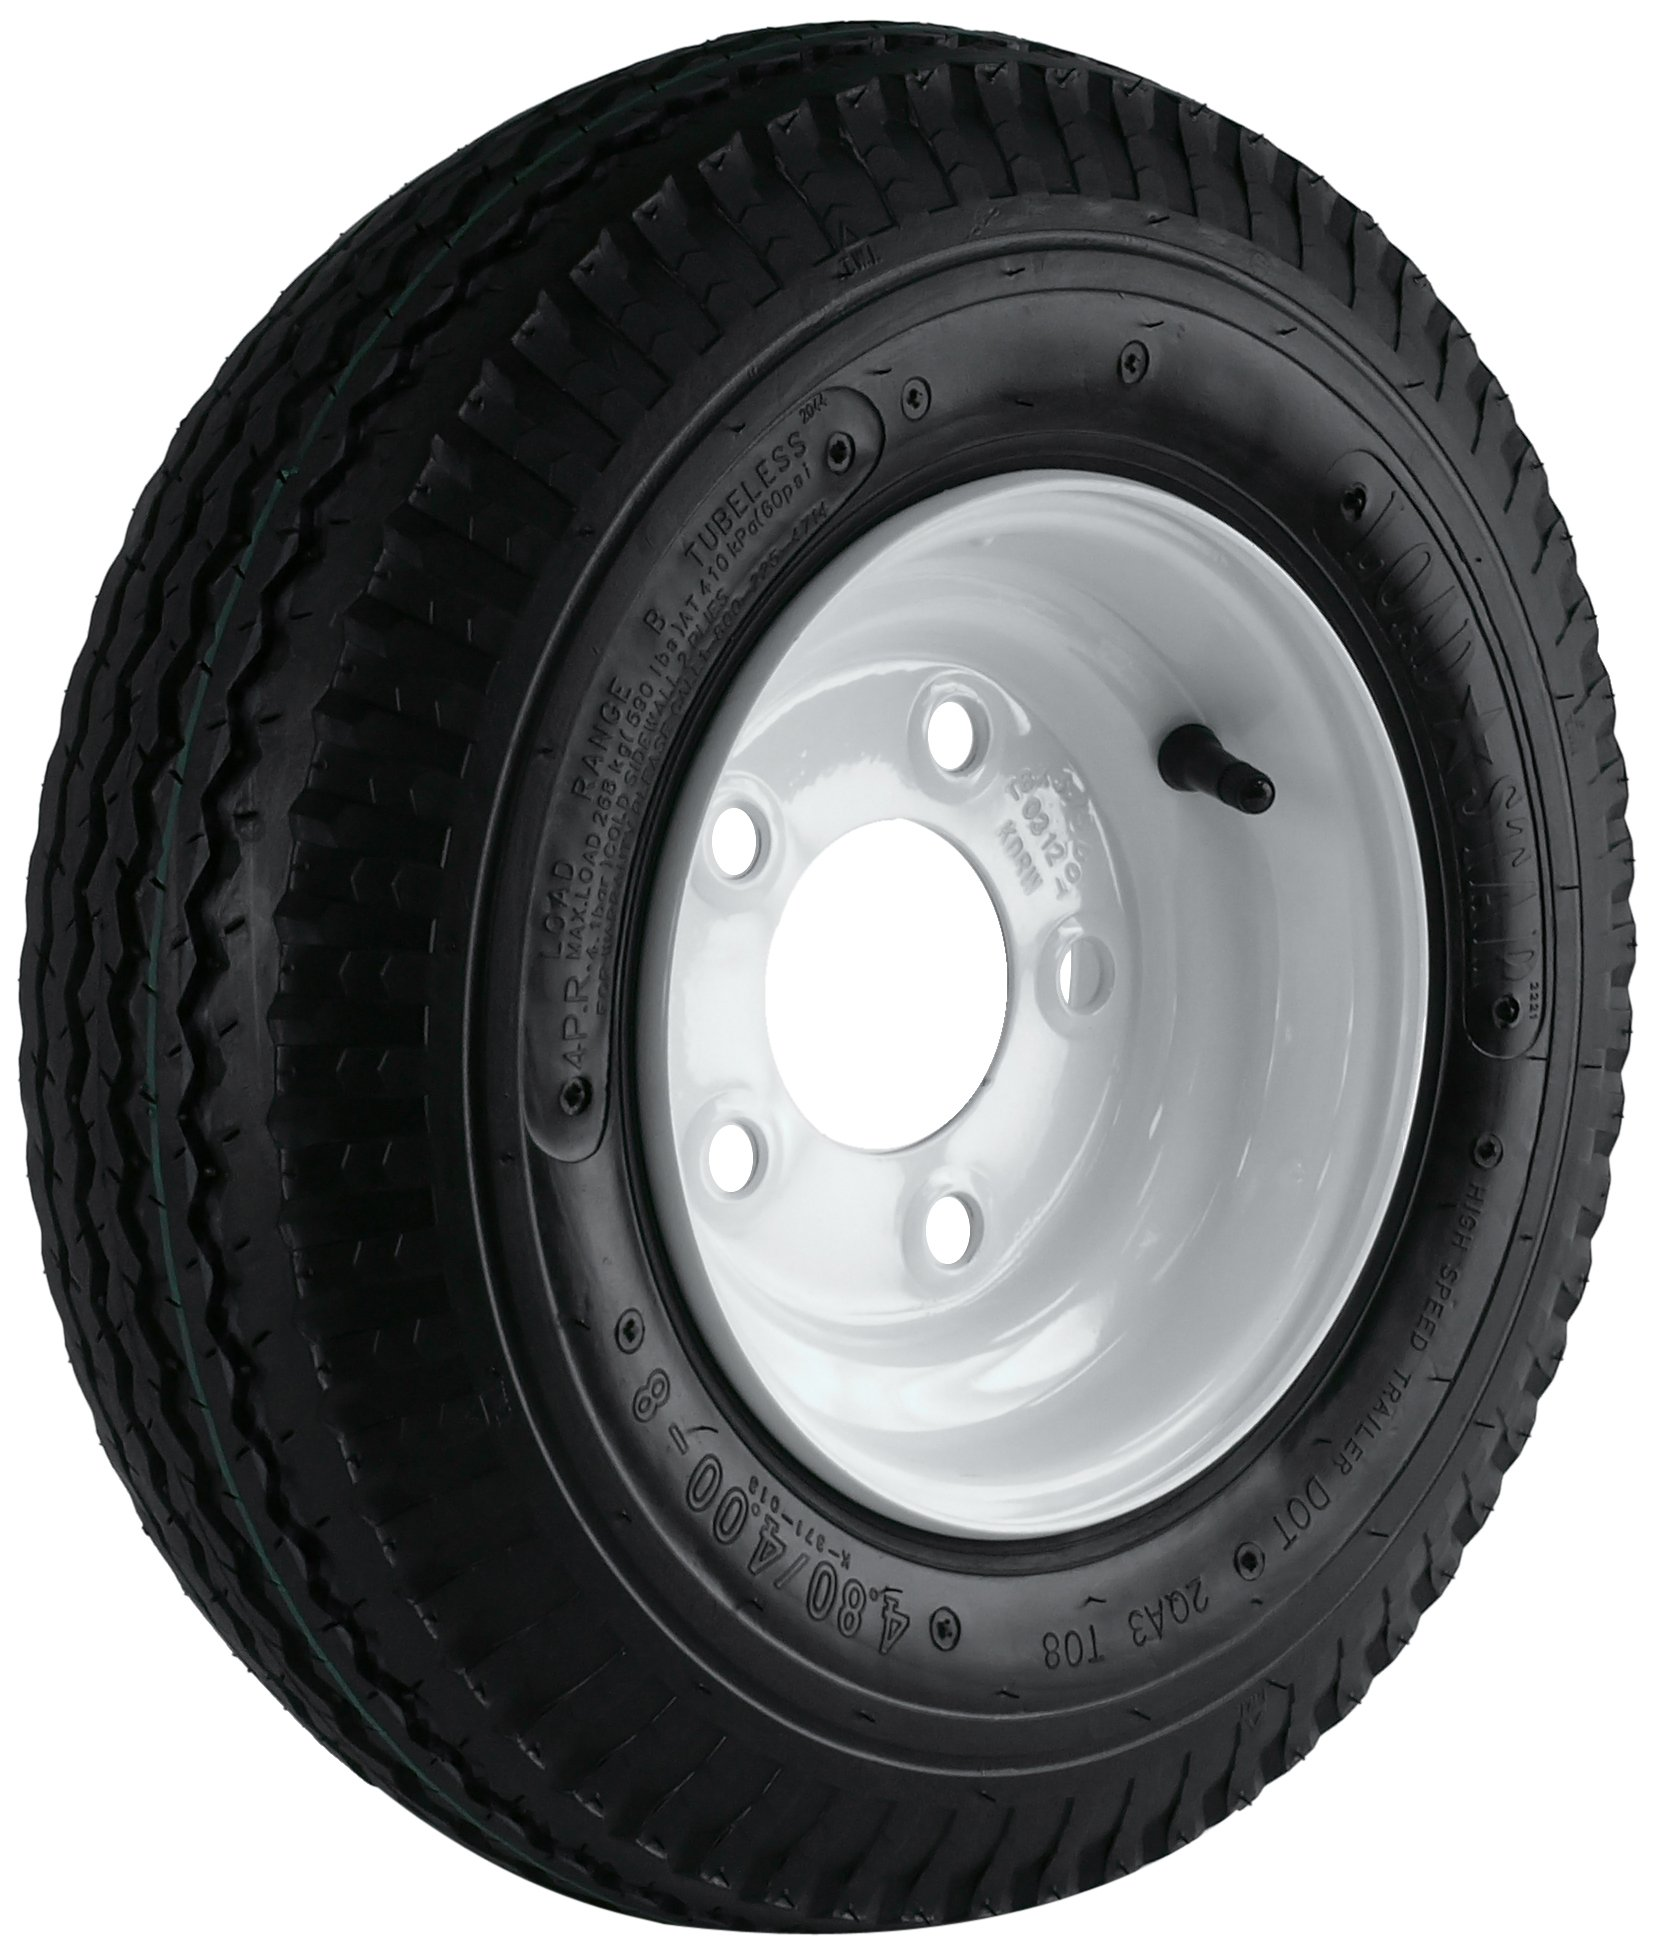 Kenda Loadstar (8x3.75/5x4.5) Wheel with White Powder-Coat Pinstripe Finish LRB and Trailer Tire Assembly (480/400-8)